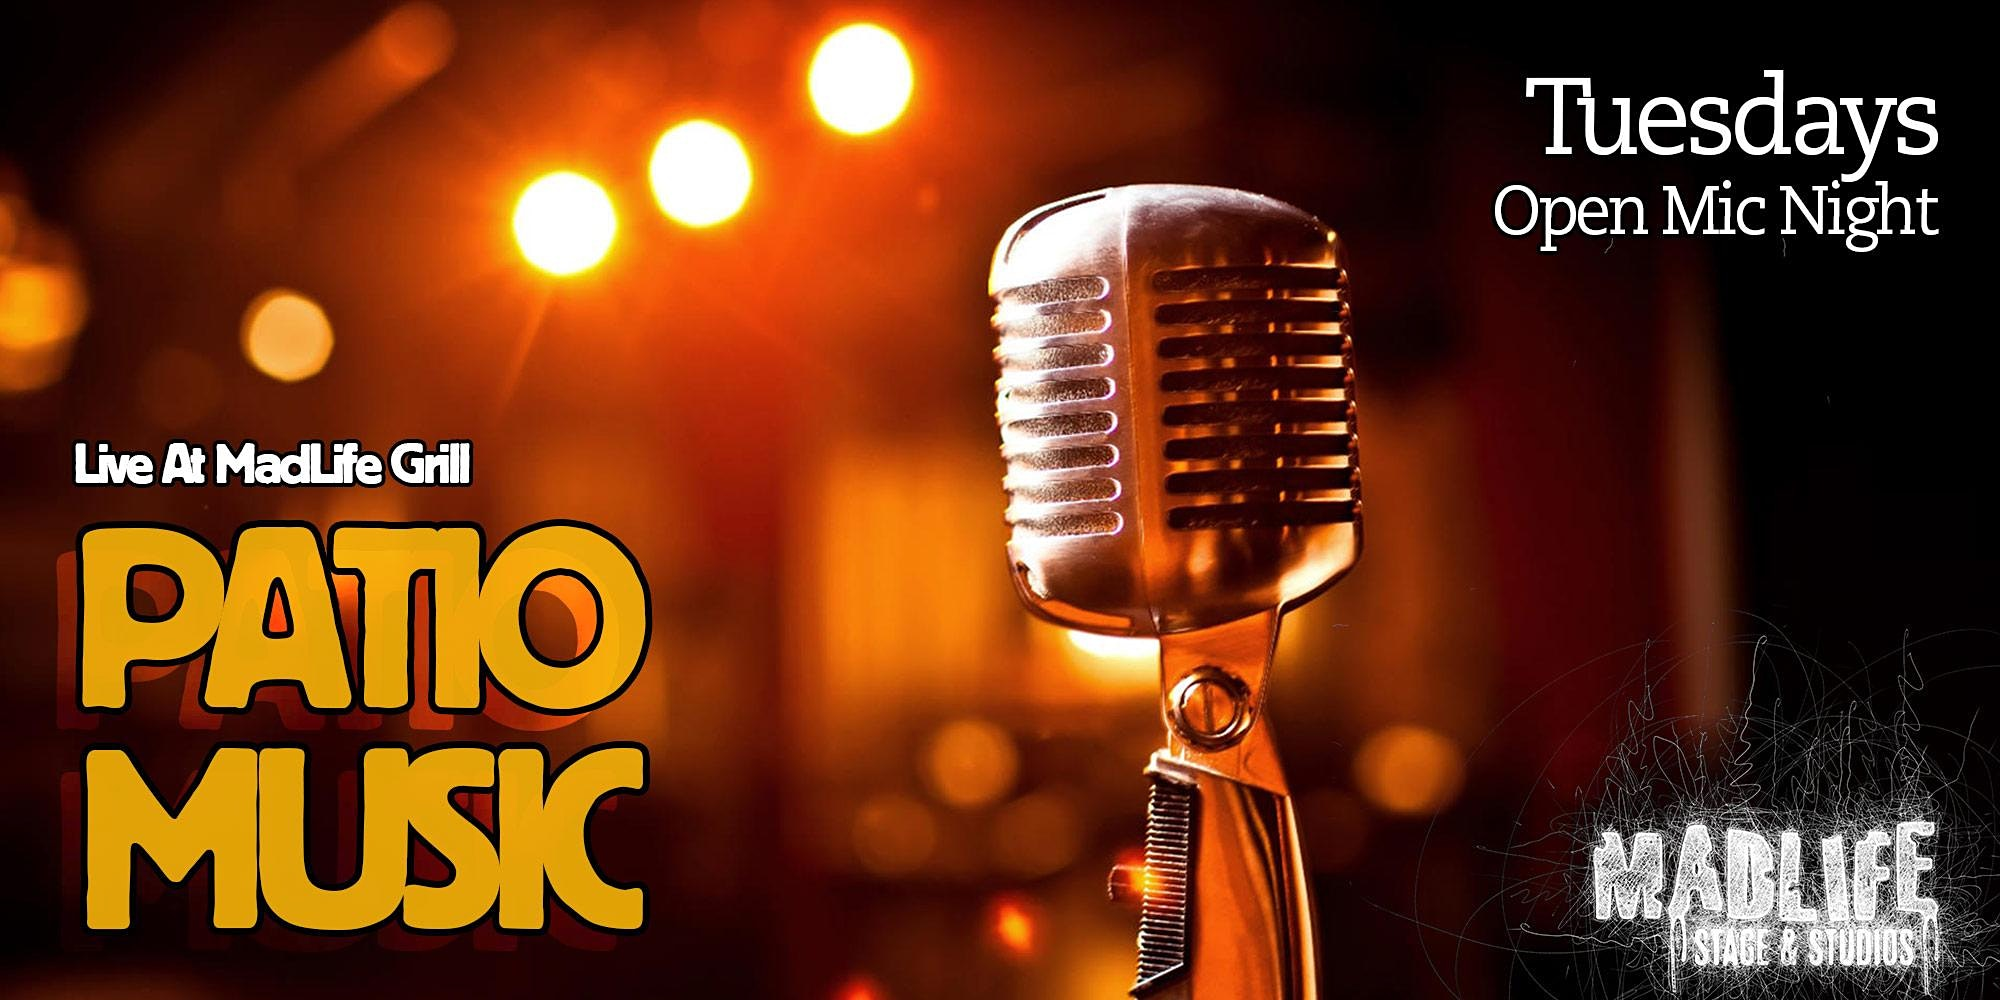 TUE Patio: Open Mic Night — Hosted by Greg Shaddix